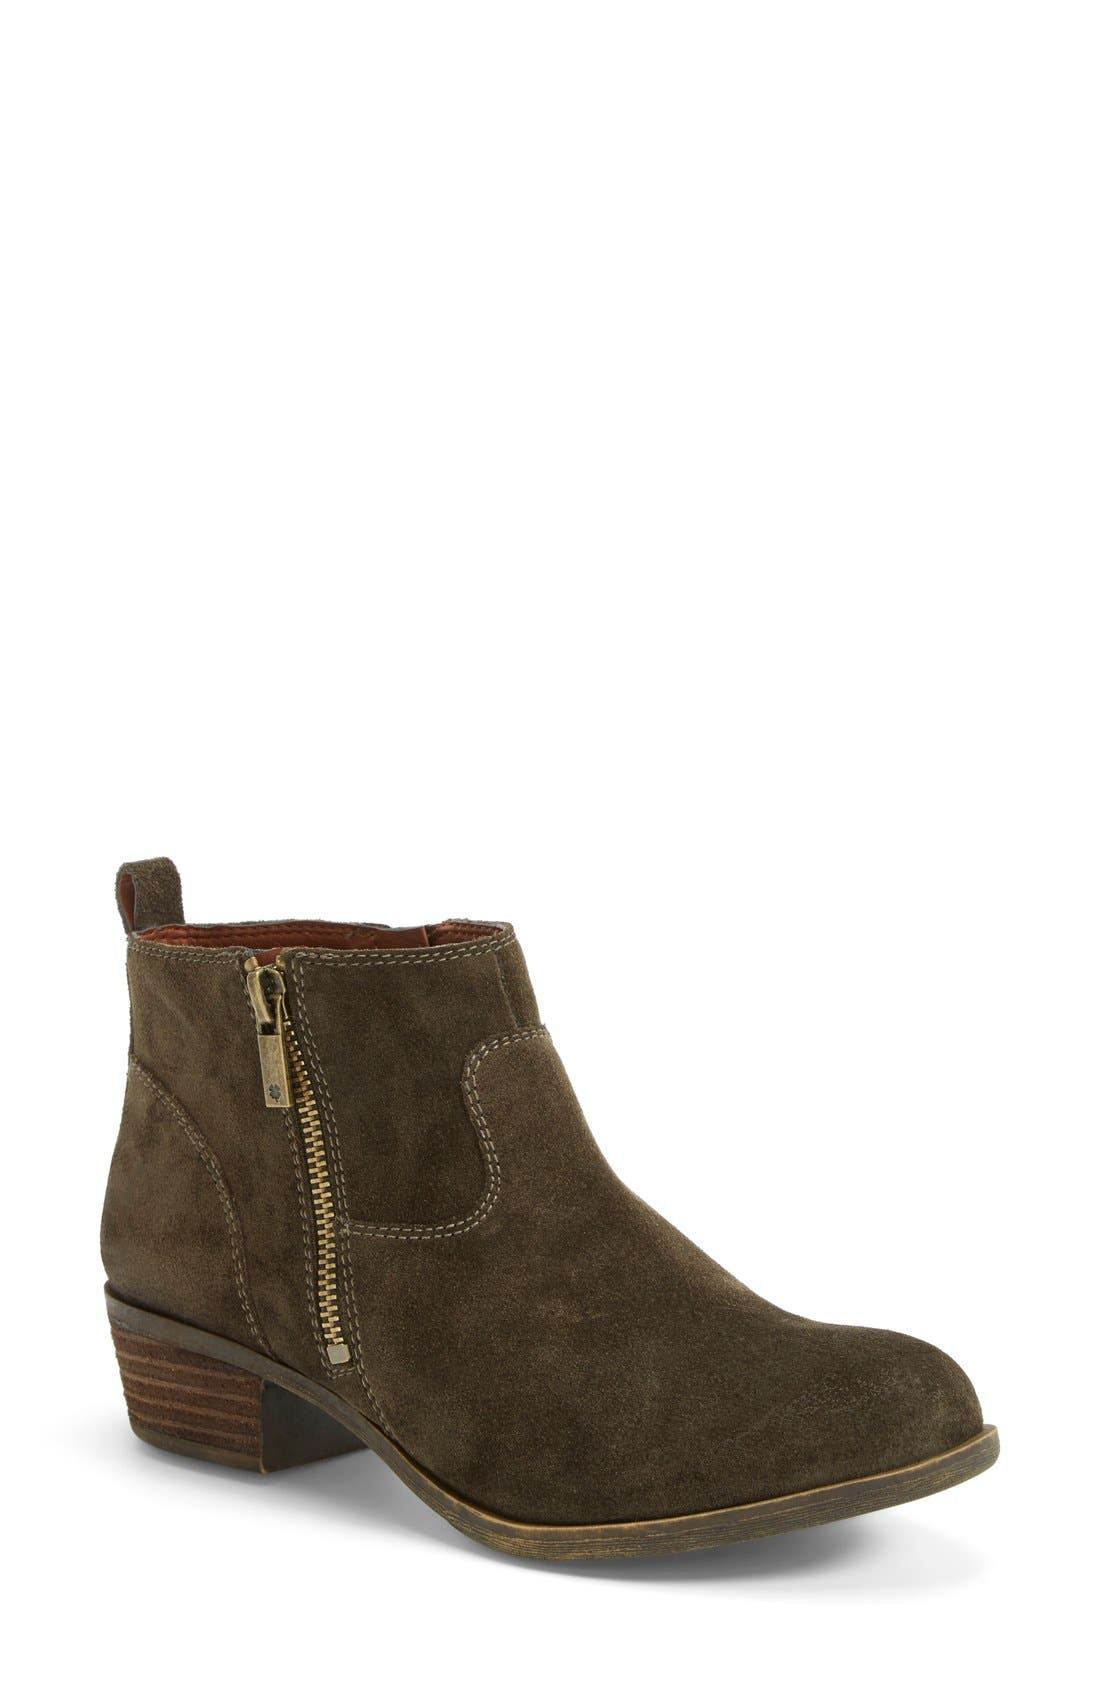 Alternate Image 1 Selected - Lucky Brand 'Betwixt' Bootie (Women) (Nordstrom Exclusive)